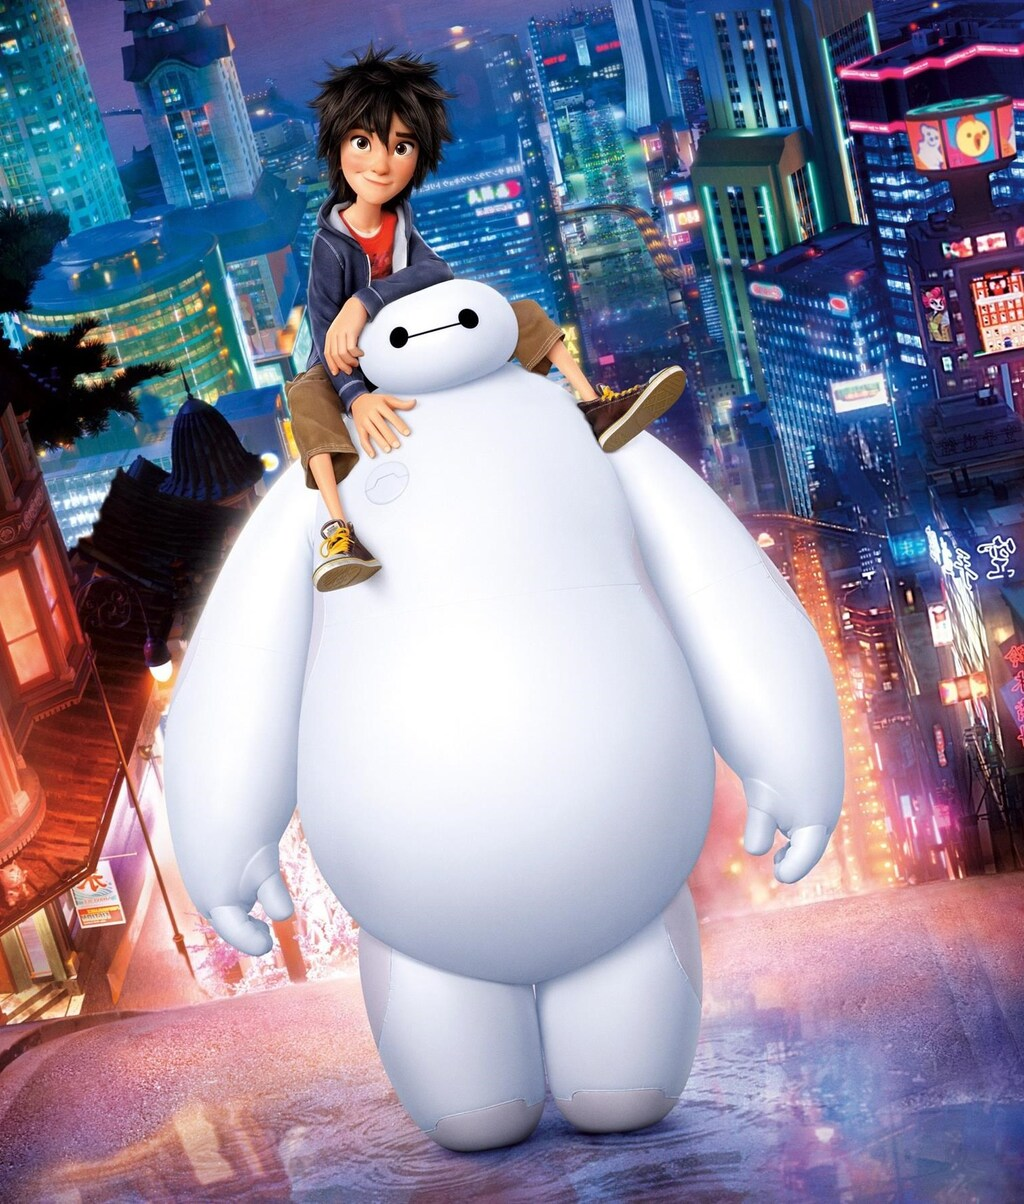 baymax in big hero 6 wallpapers - DriverLayer Search Engine